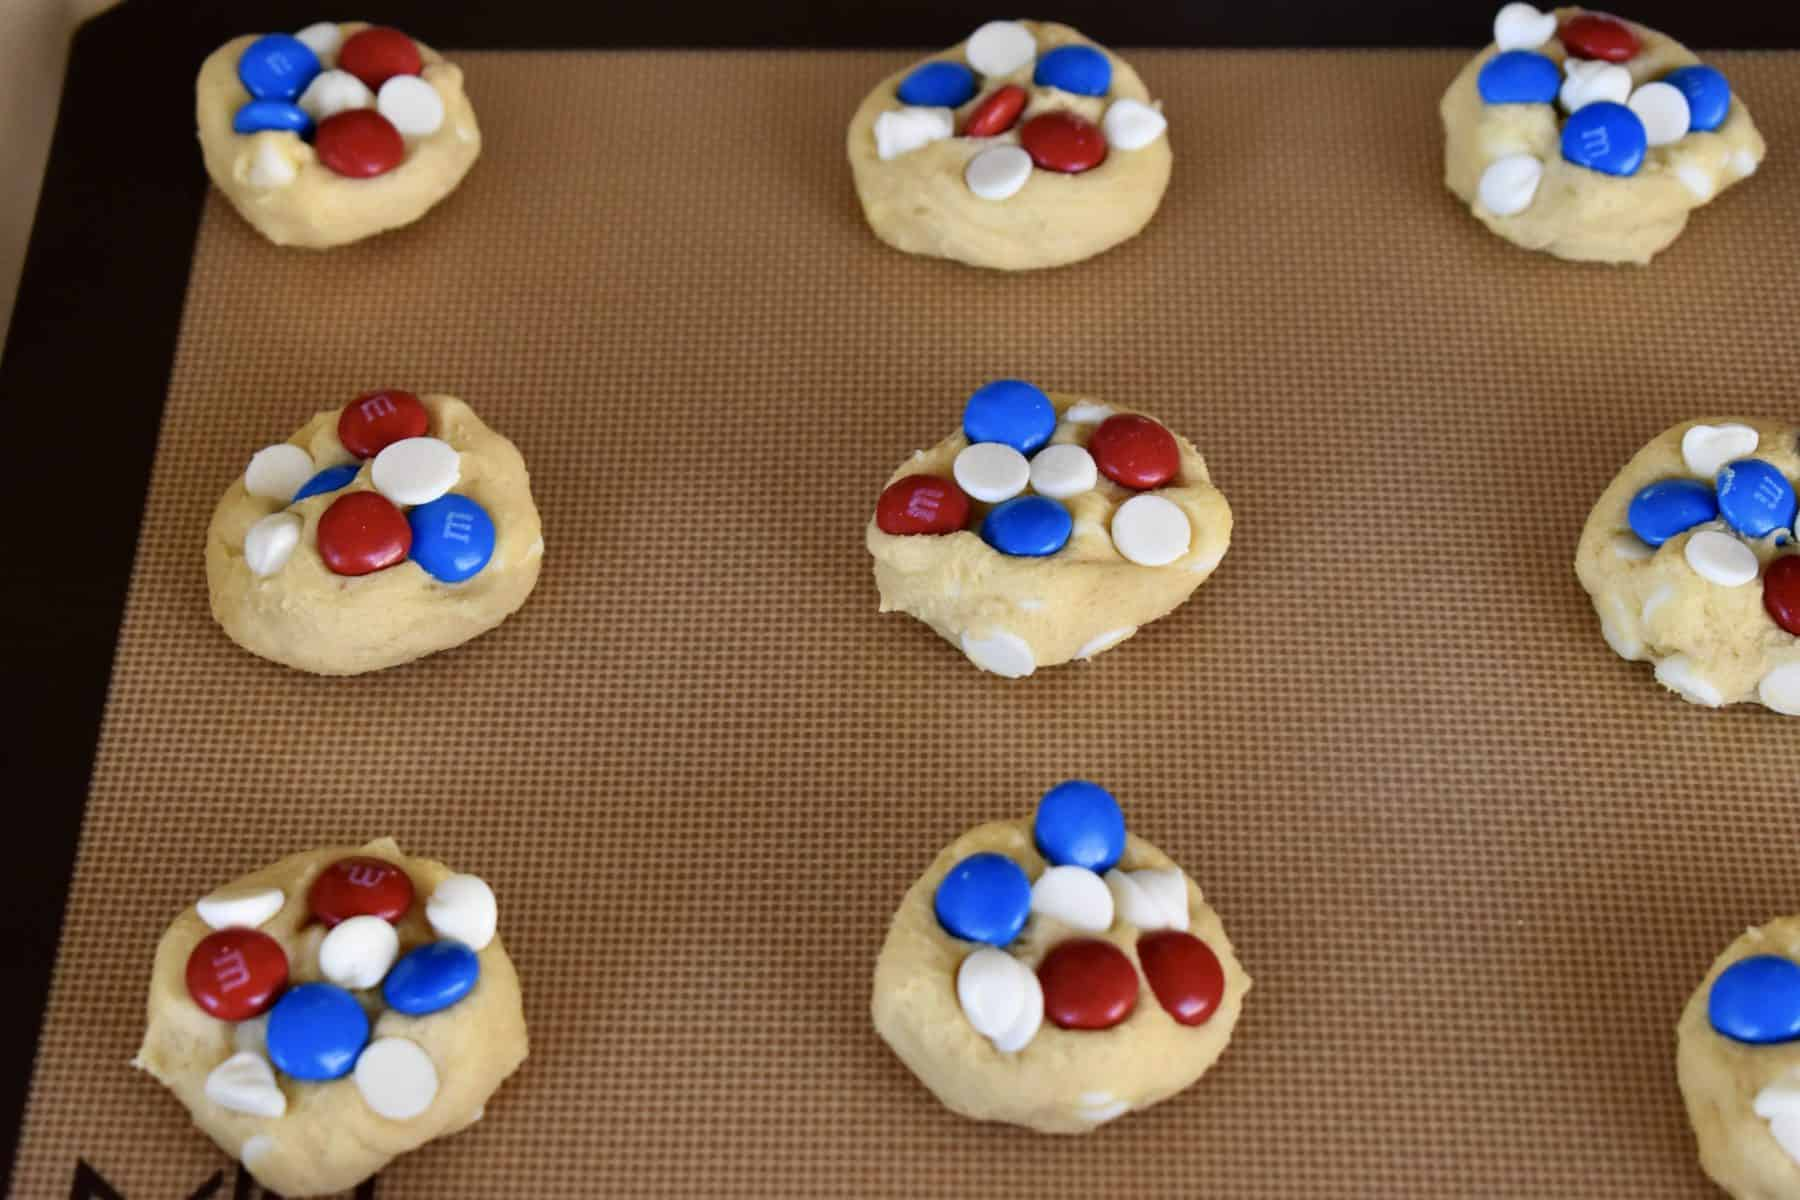 Cookies on a baking sheet with red and blue M&M's pressed into them.